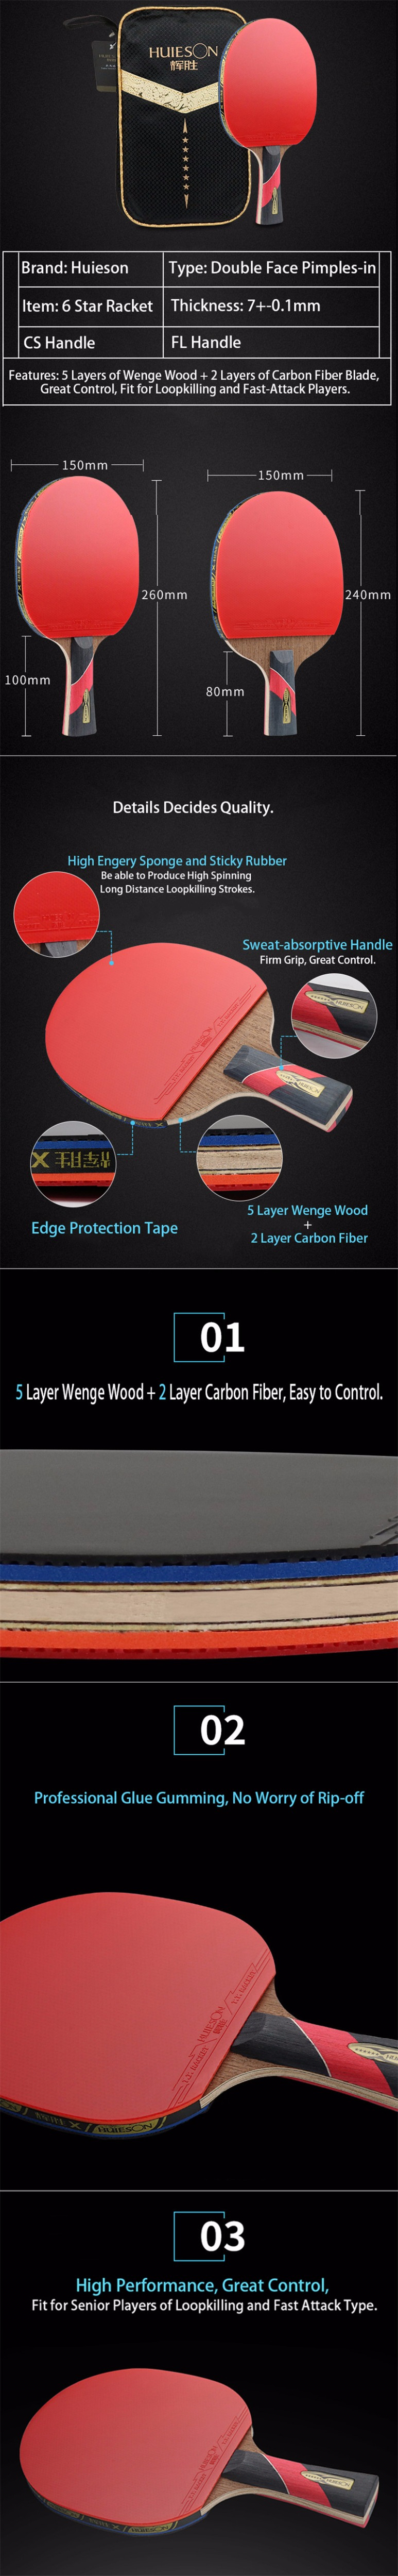 Huieson Wenge Wood & Carbon Fiber Blade 6 Star Table Tennis Racket Sticky Pimples-in Rubber Super Powerful Ping Pong Racket Bat (7)